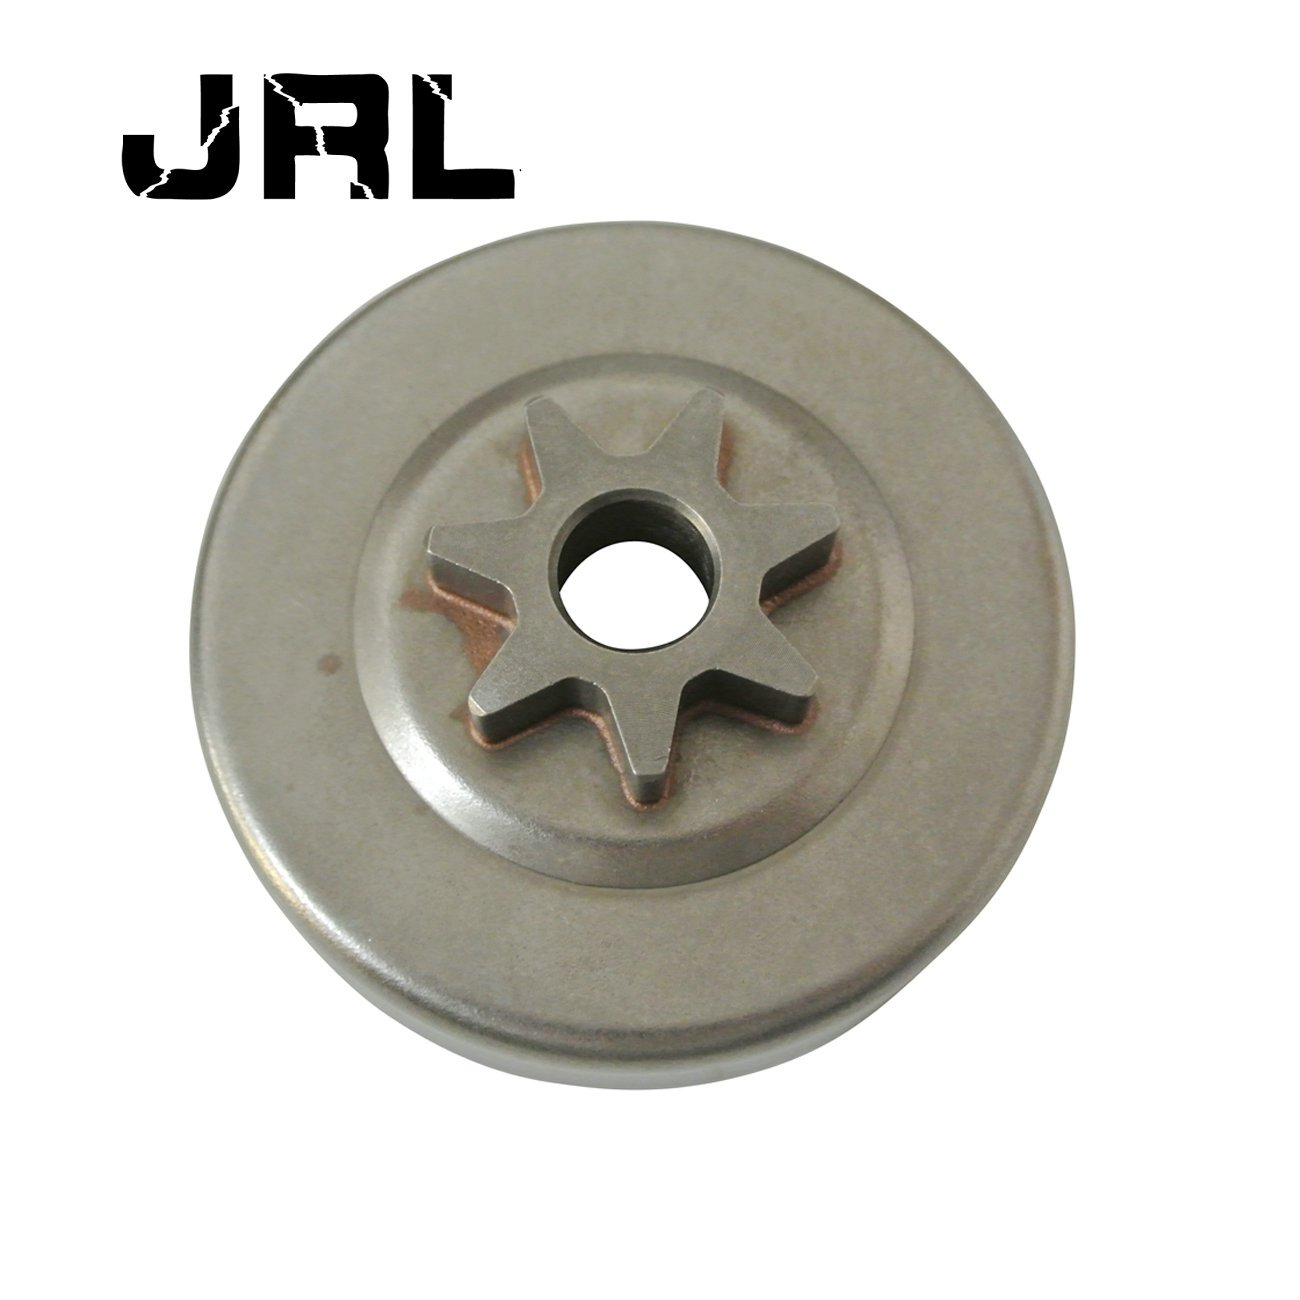 JRL Clutch Drum Sprocket Cover For Stihl MS290 MS310 MS390 029 034 036 039 Chainsaw Kanglai Machinery